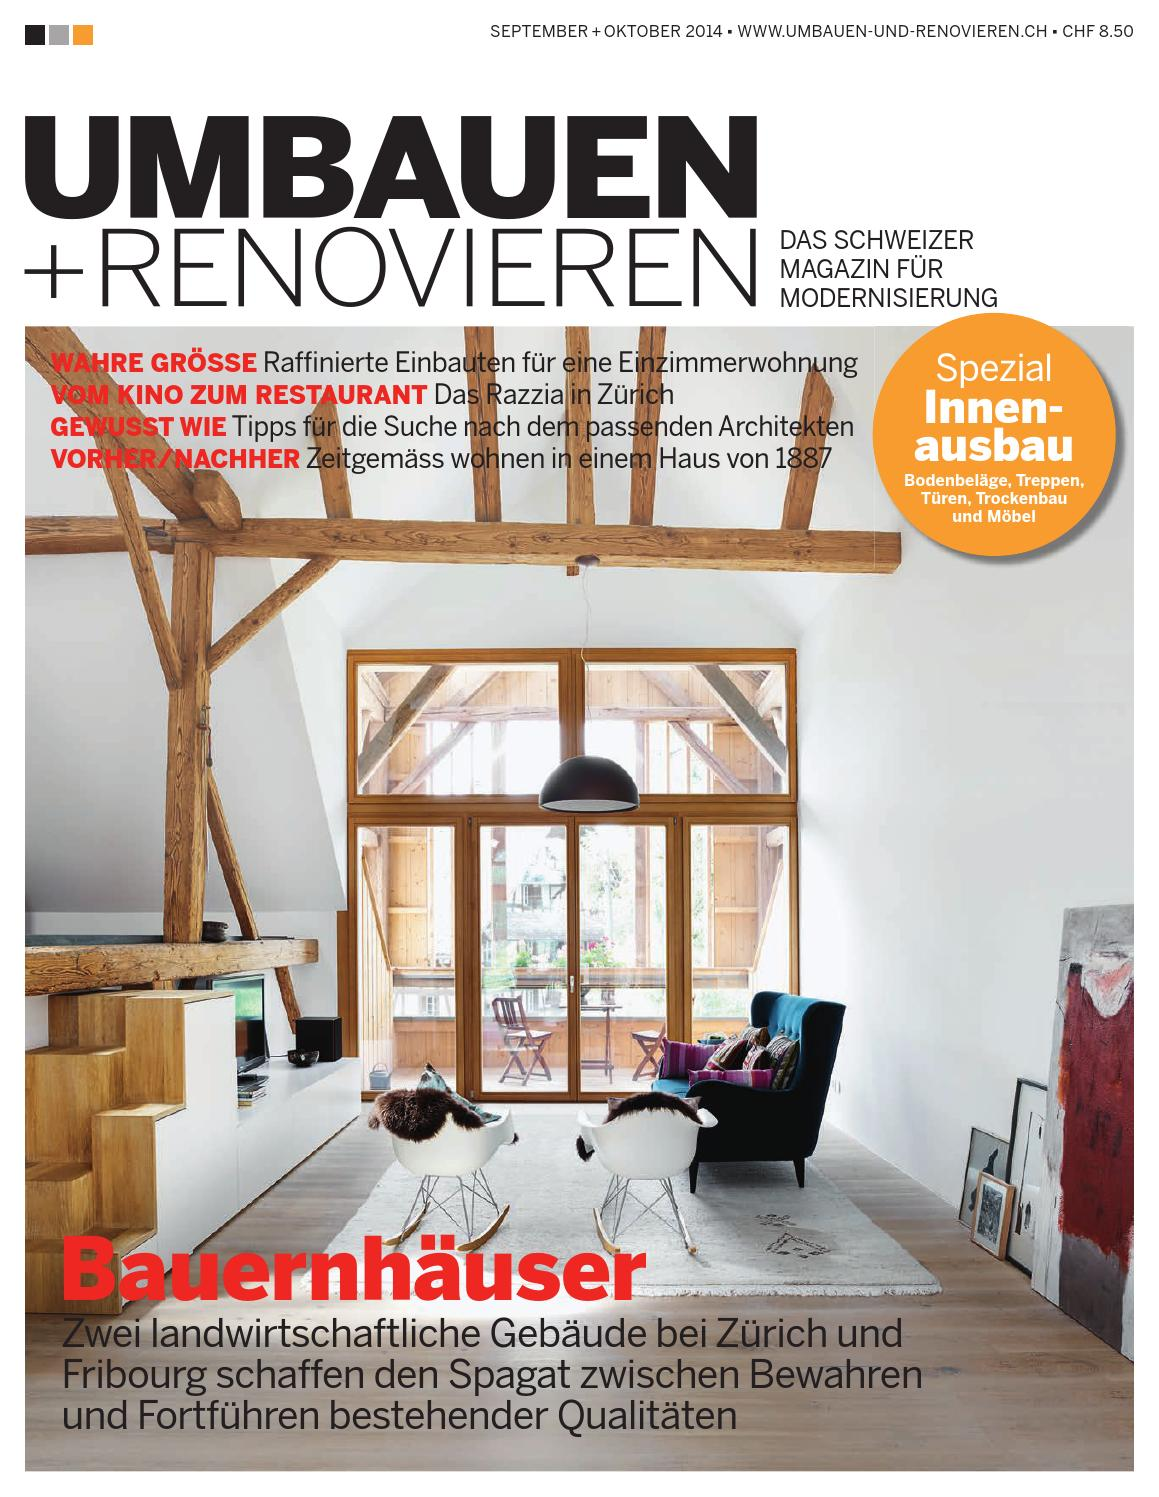 umbauen renovieren 5 2014 by archithema verlag issuu. Black Bedroom Furniture Sets. Home Design Ideas